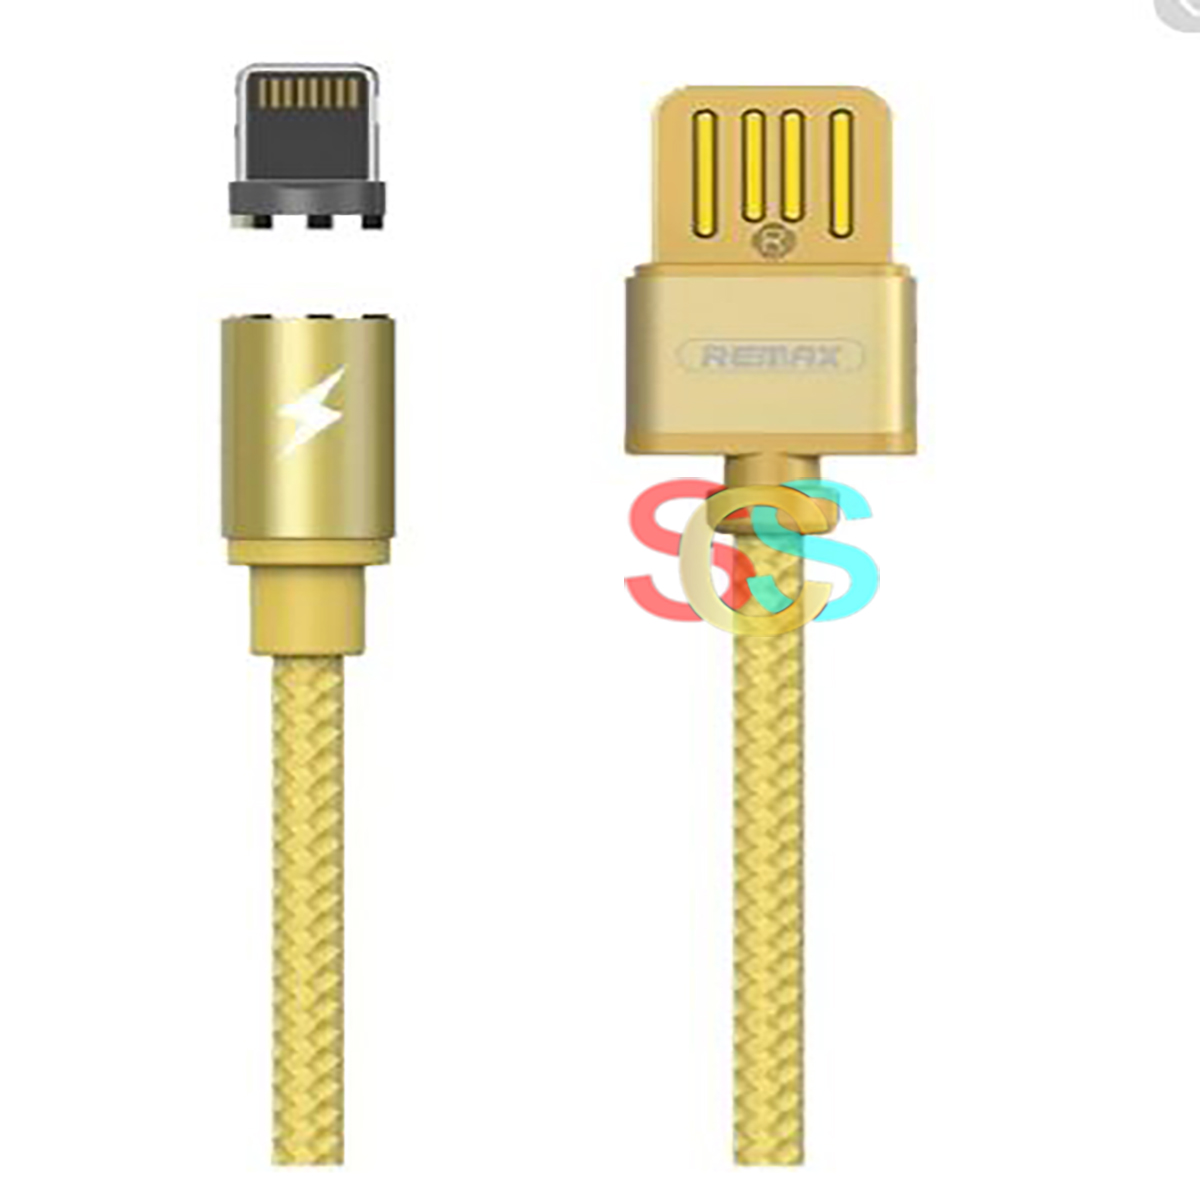 USB Male to Lightning, 1 Meter, Gold Charging Cable